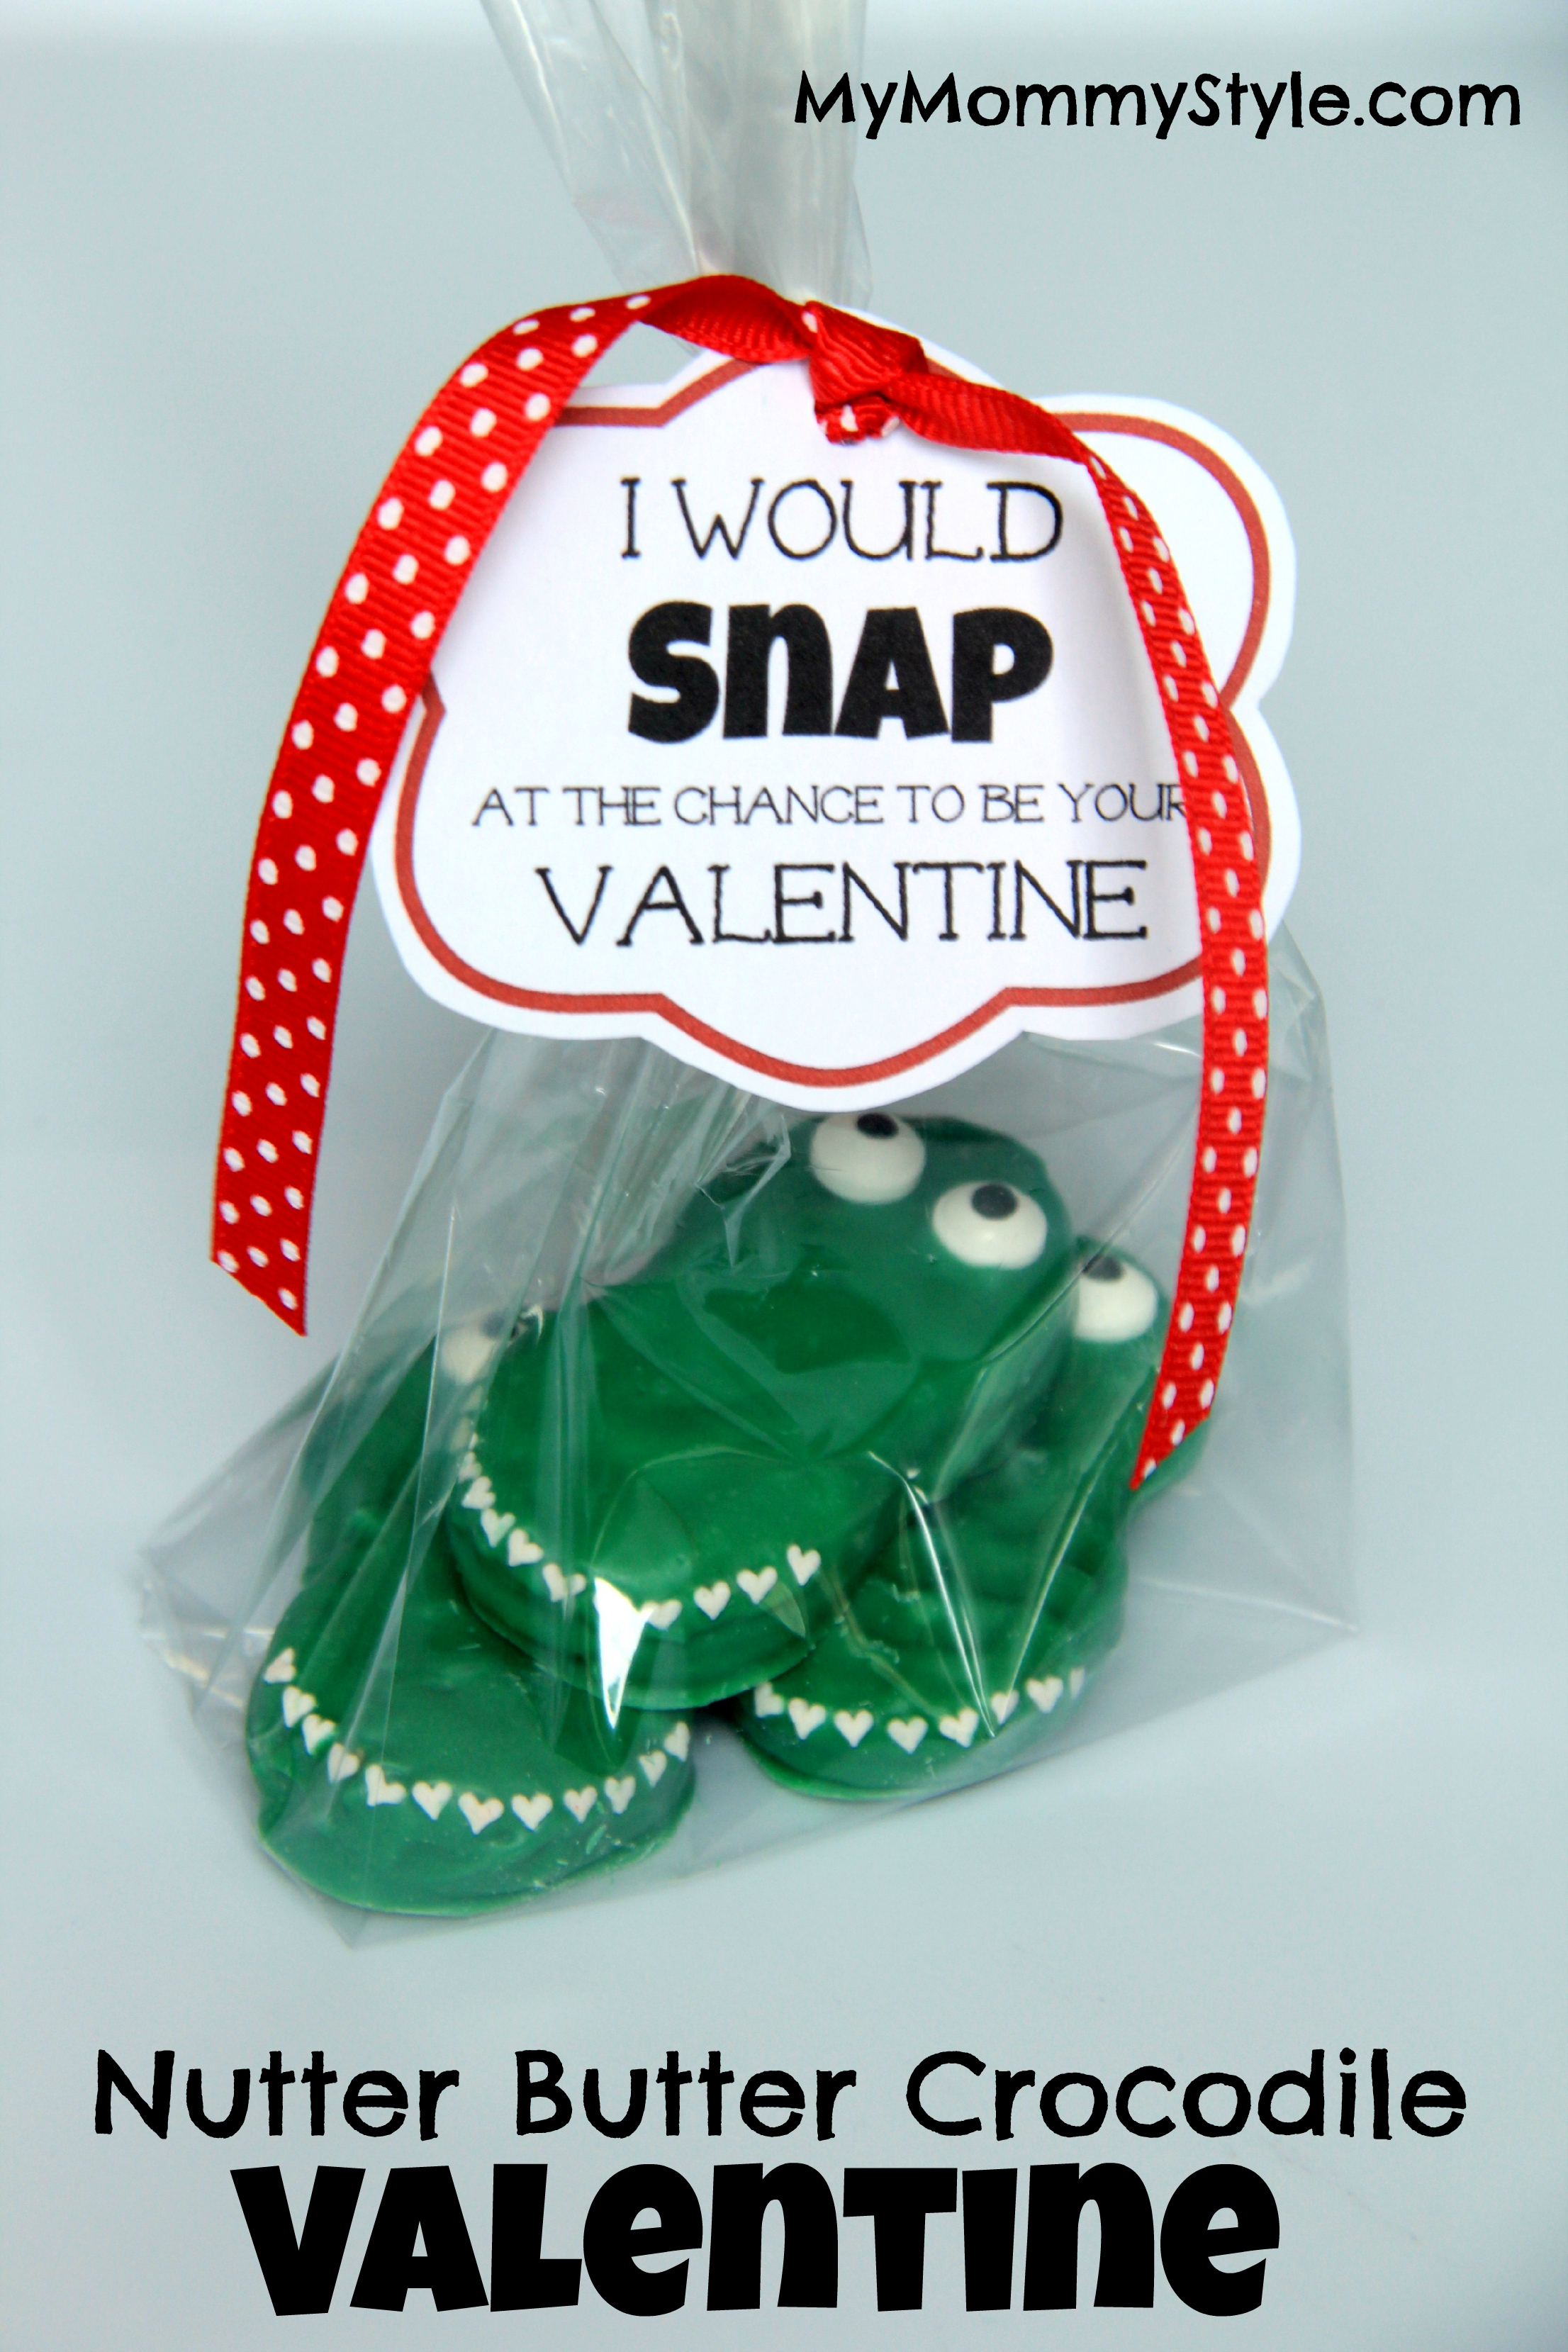 Crocodile Nutter Butter Valentines My Mommy Style